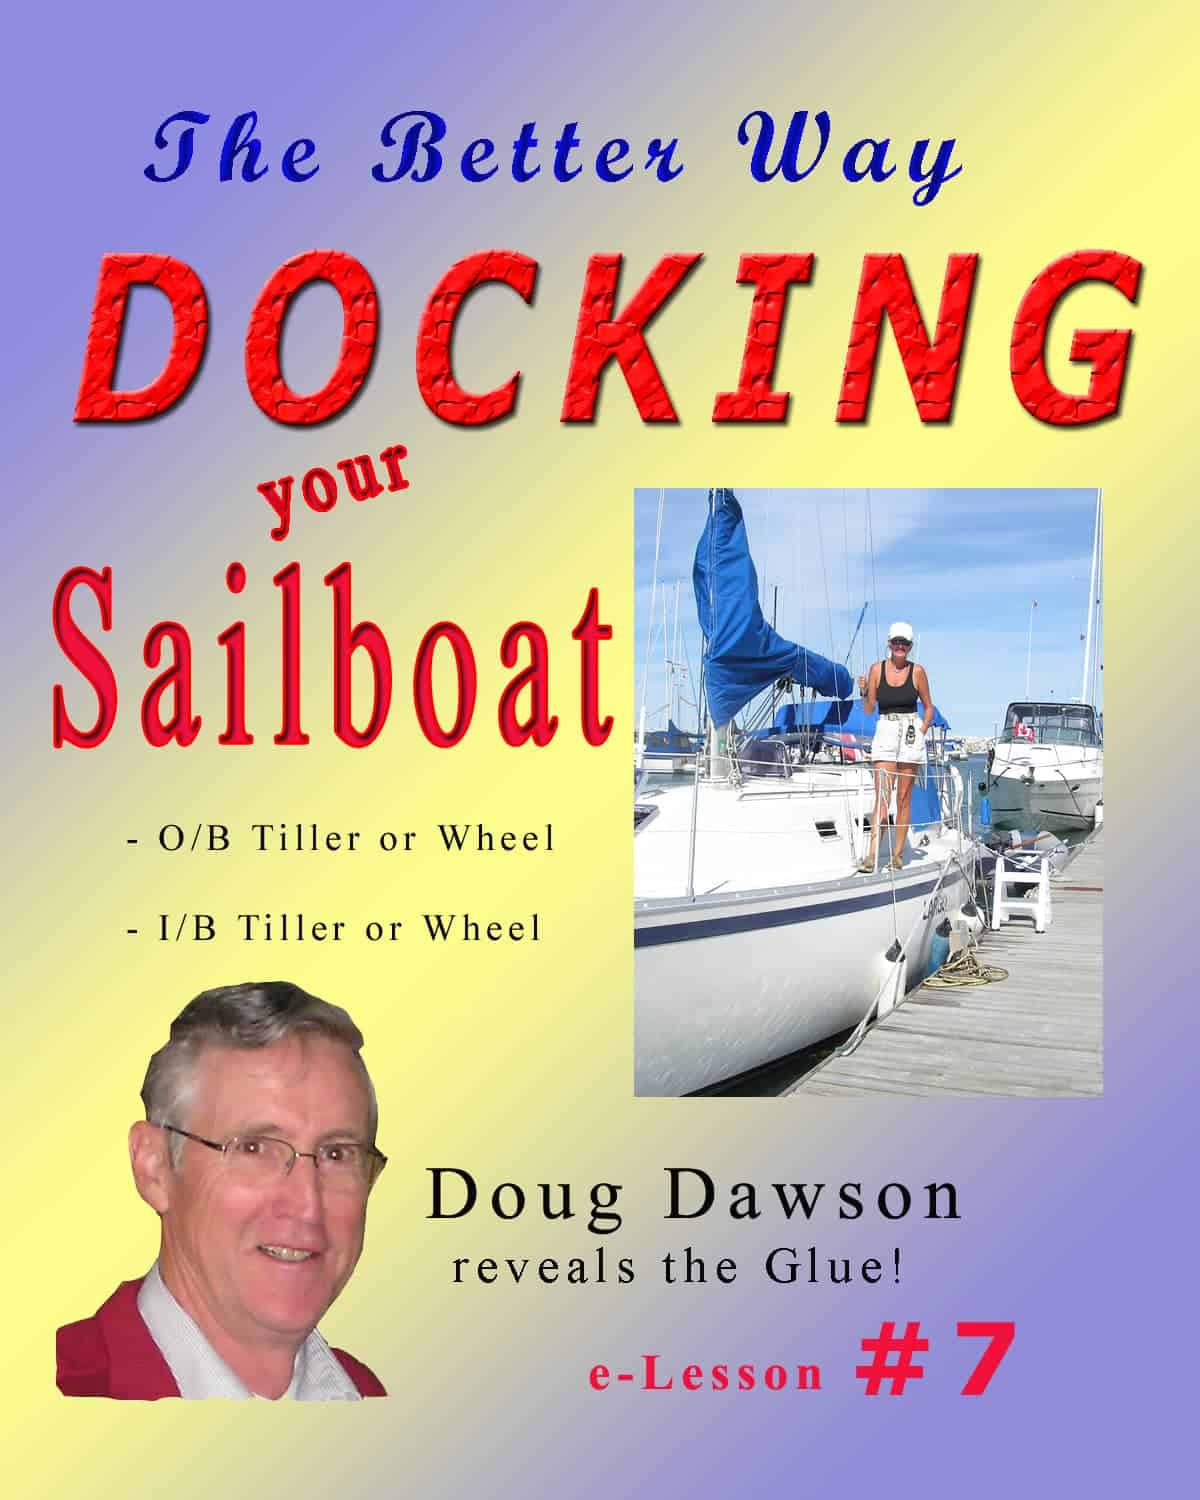 docking a sailboat